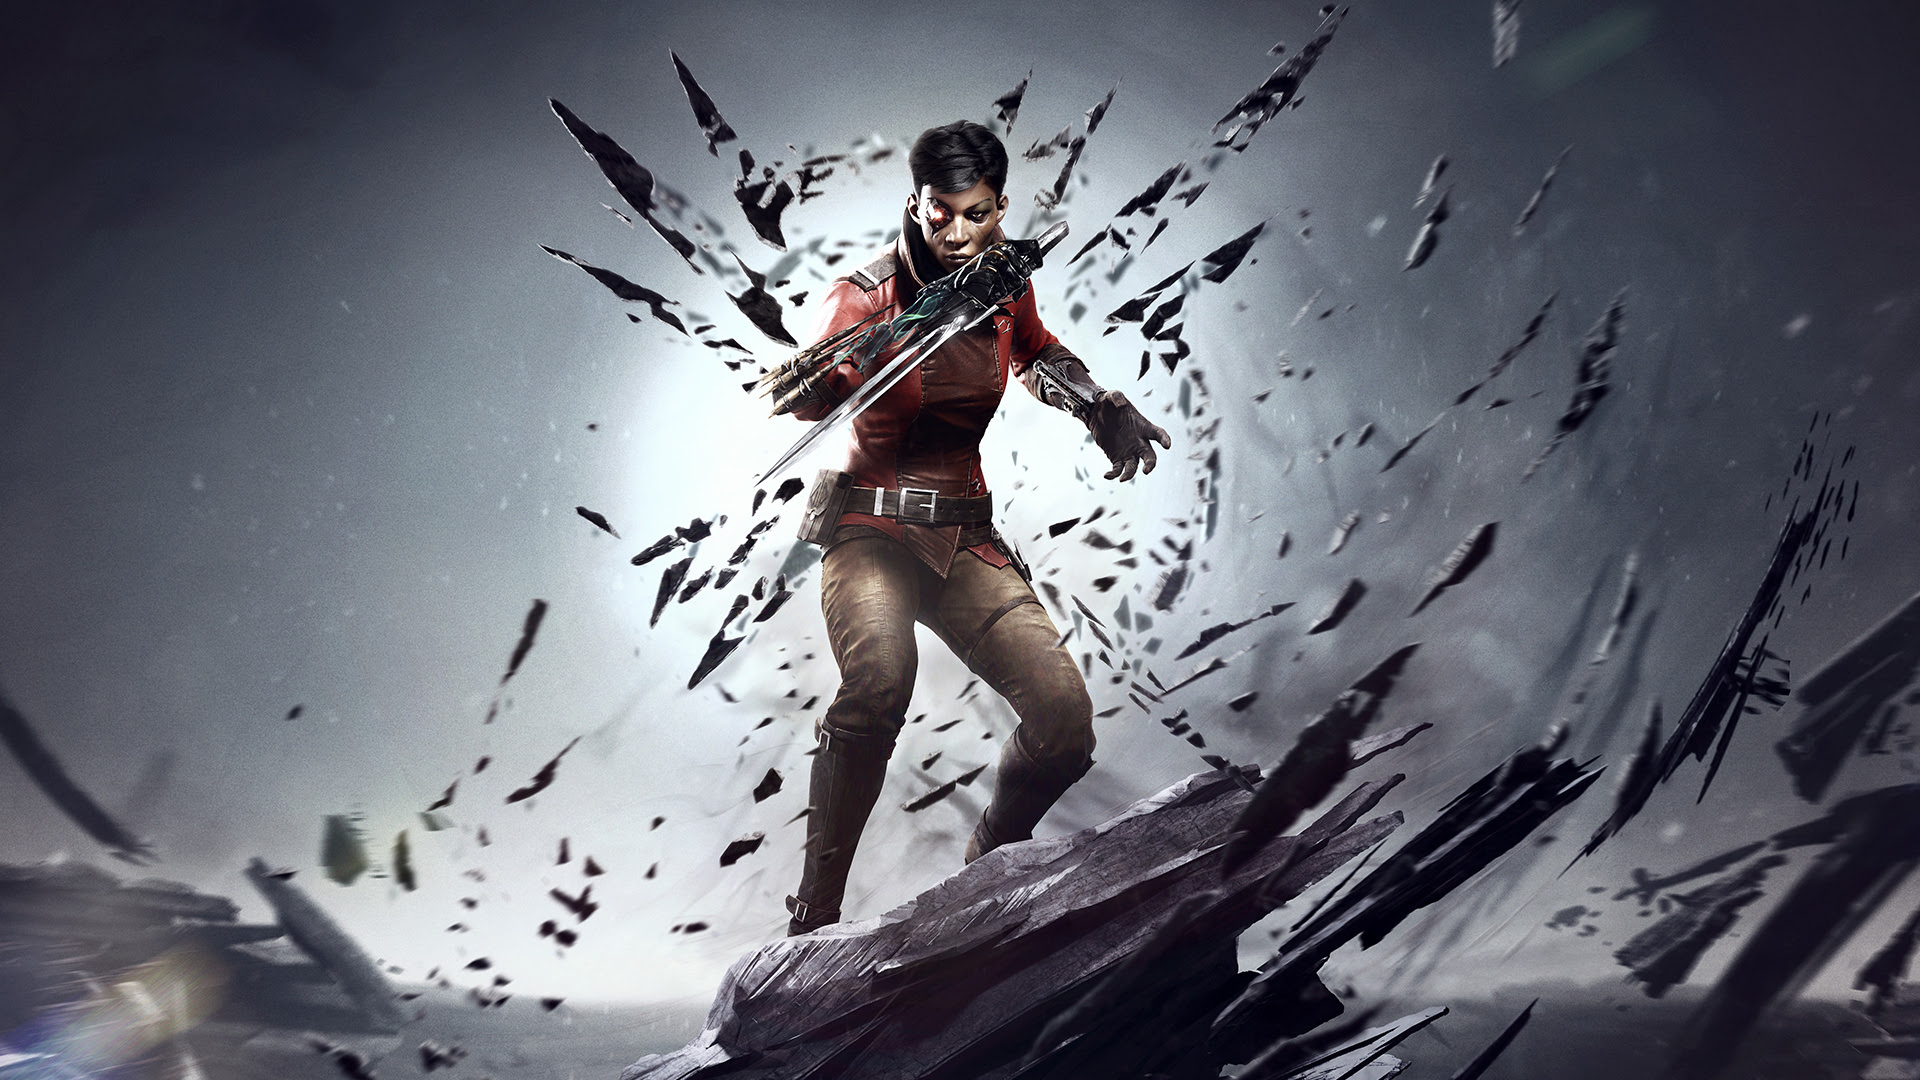 Bethesda has announced Dishonored: Death of the Outsider for PS4, Xbox One and PC screenshot